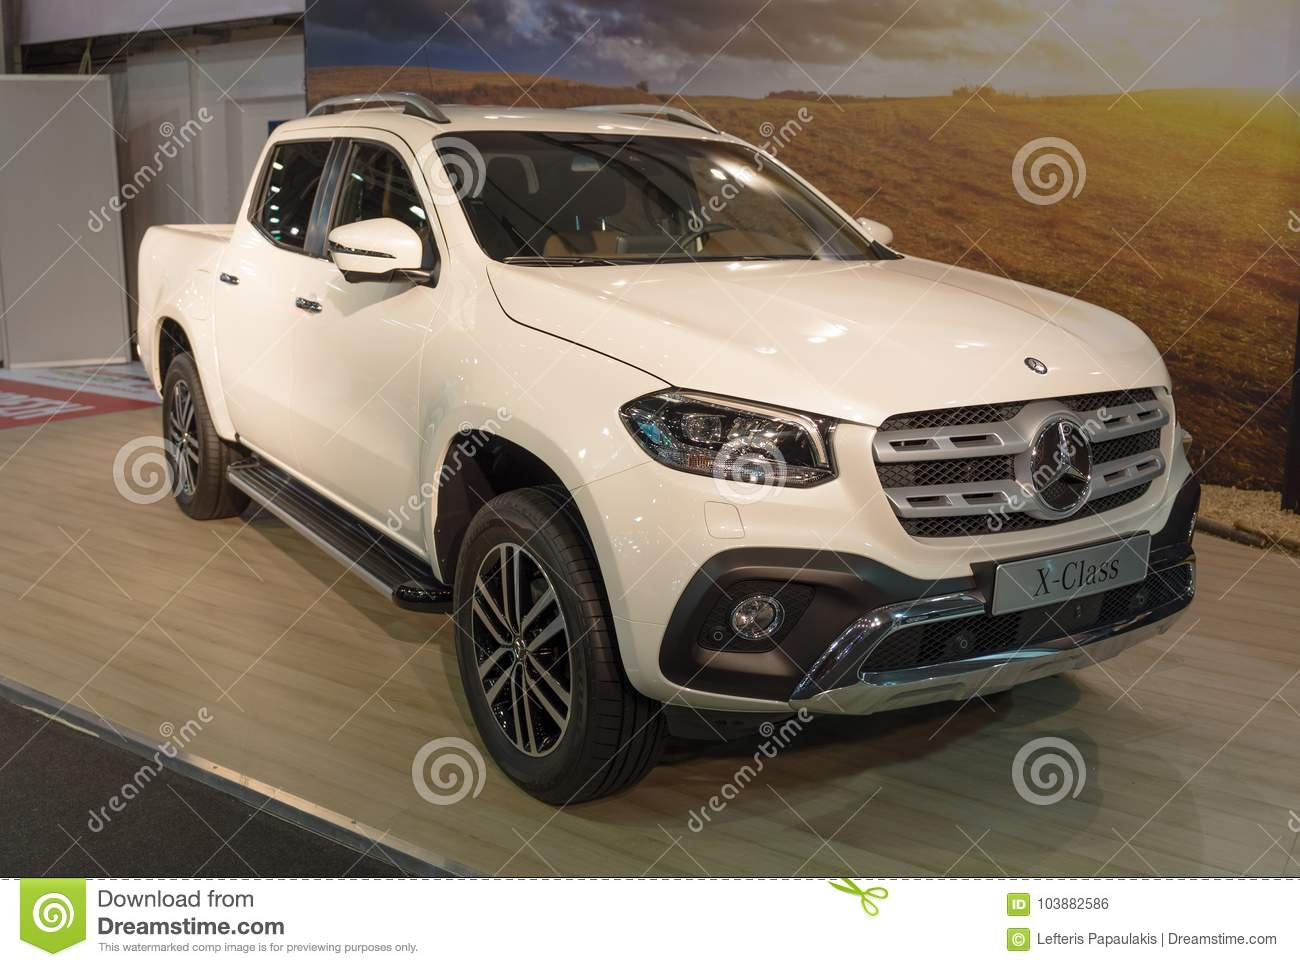 Download ATHENS, GREECE   NOVEMBER 14, 2017: Mercedes Benz X Class